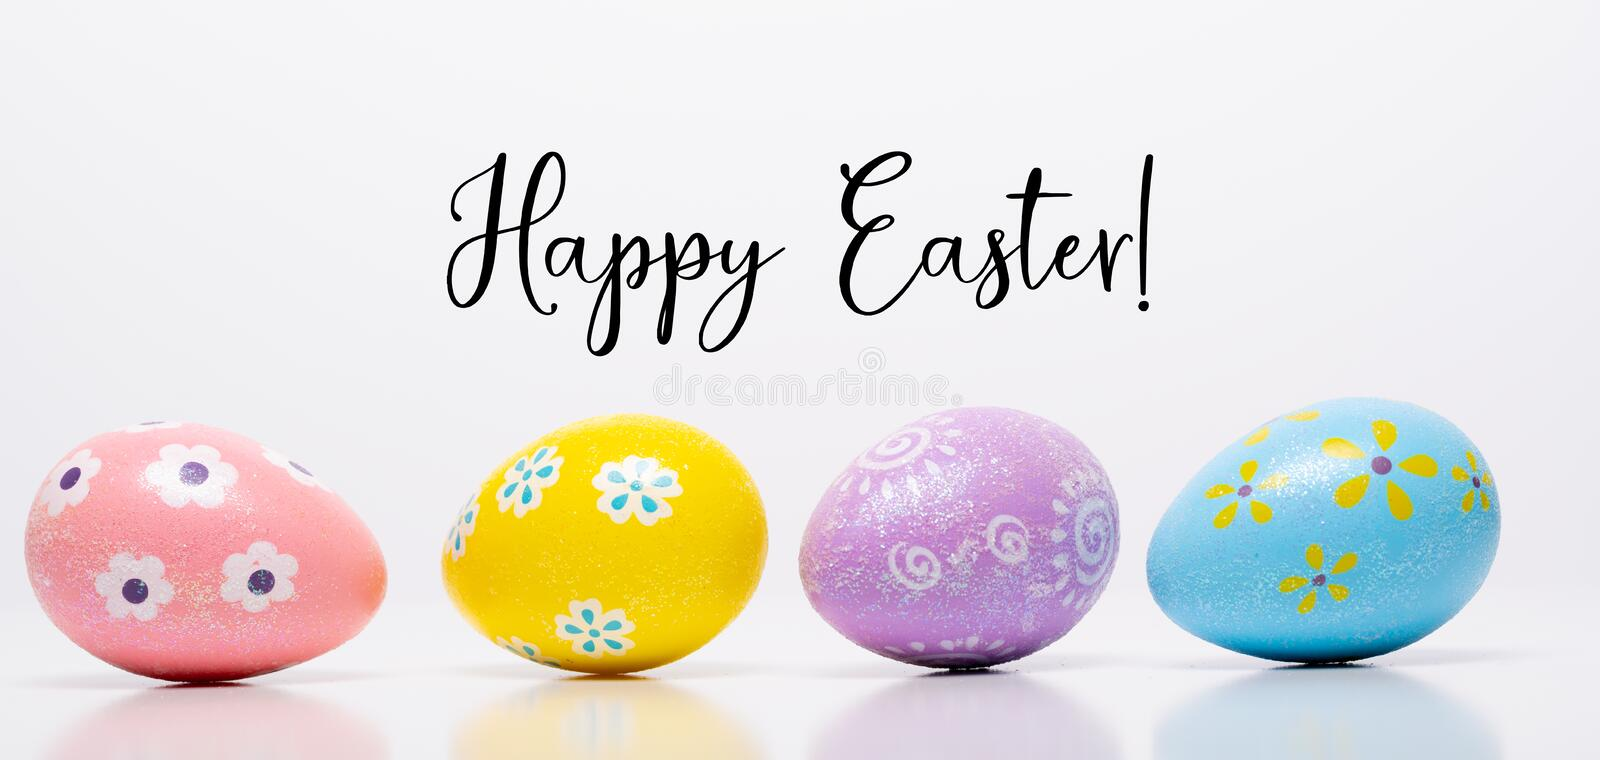 Colorful Easter eggs on white background with greeting royalty free stock images